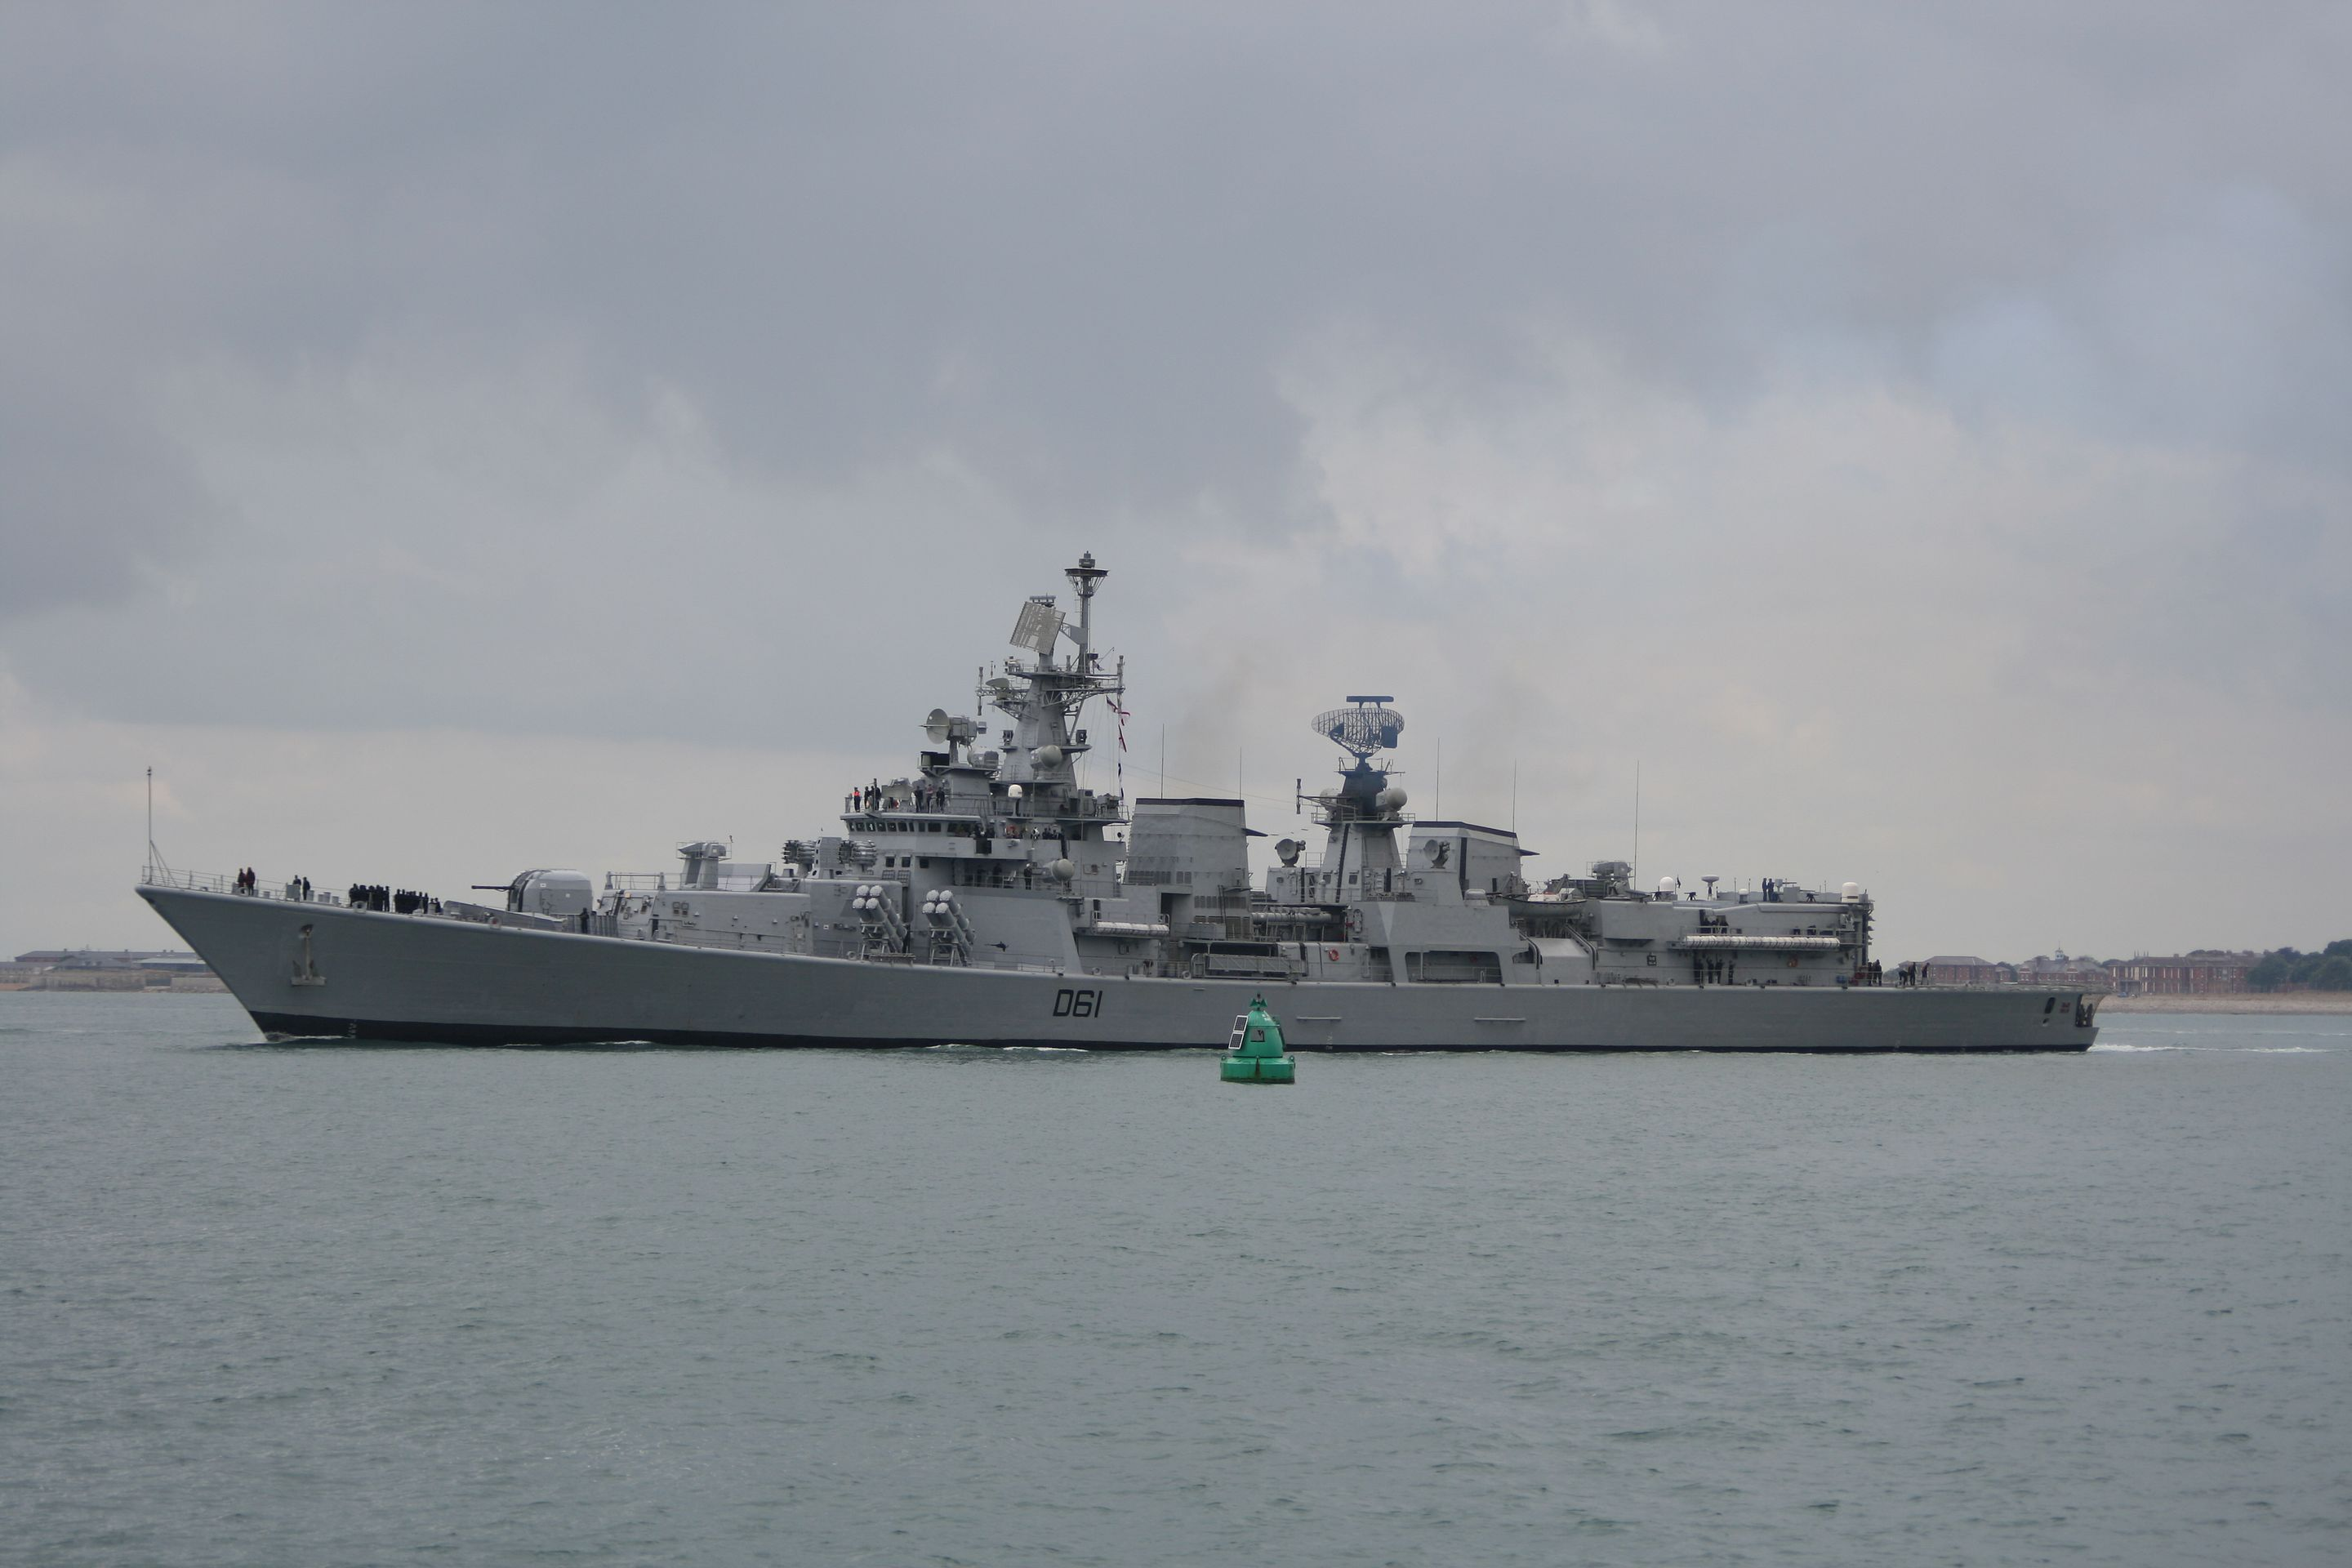 Ins Delhi D61 Wikipedia In 2020 Indian Navy Ships Indian Navy Warship